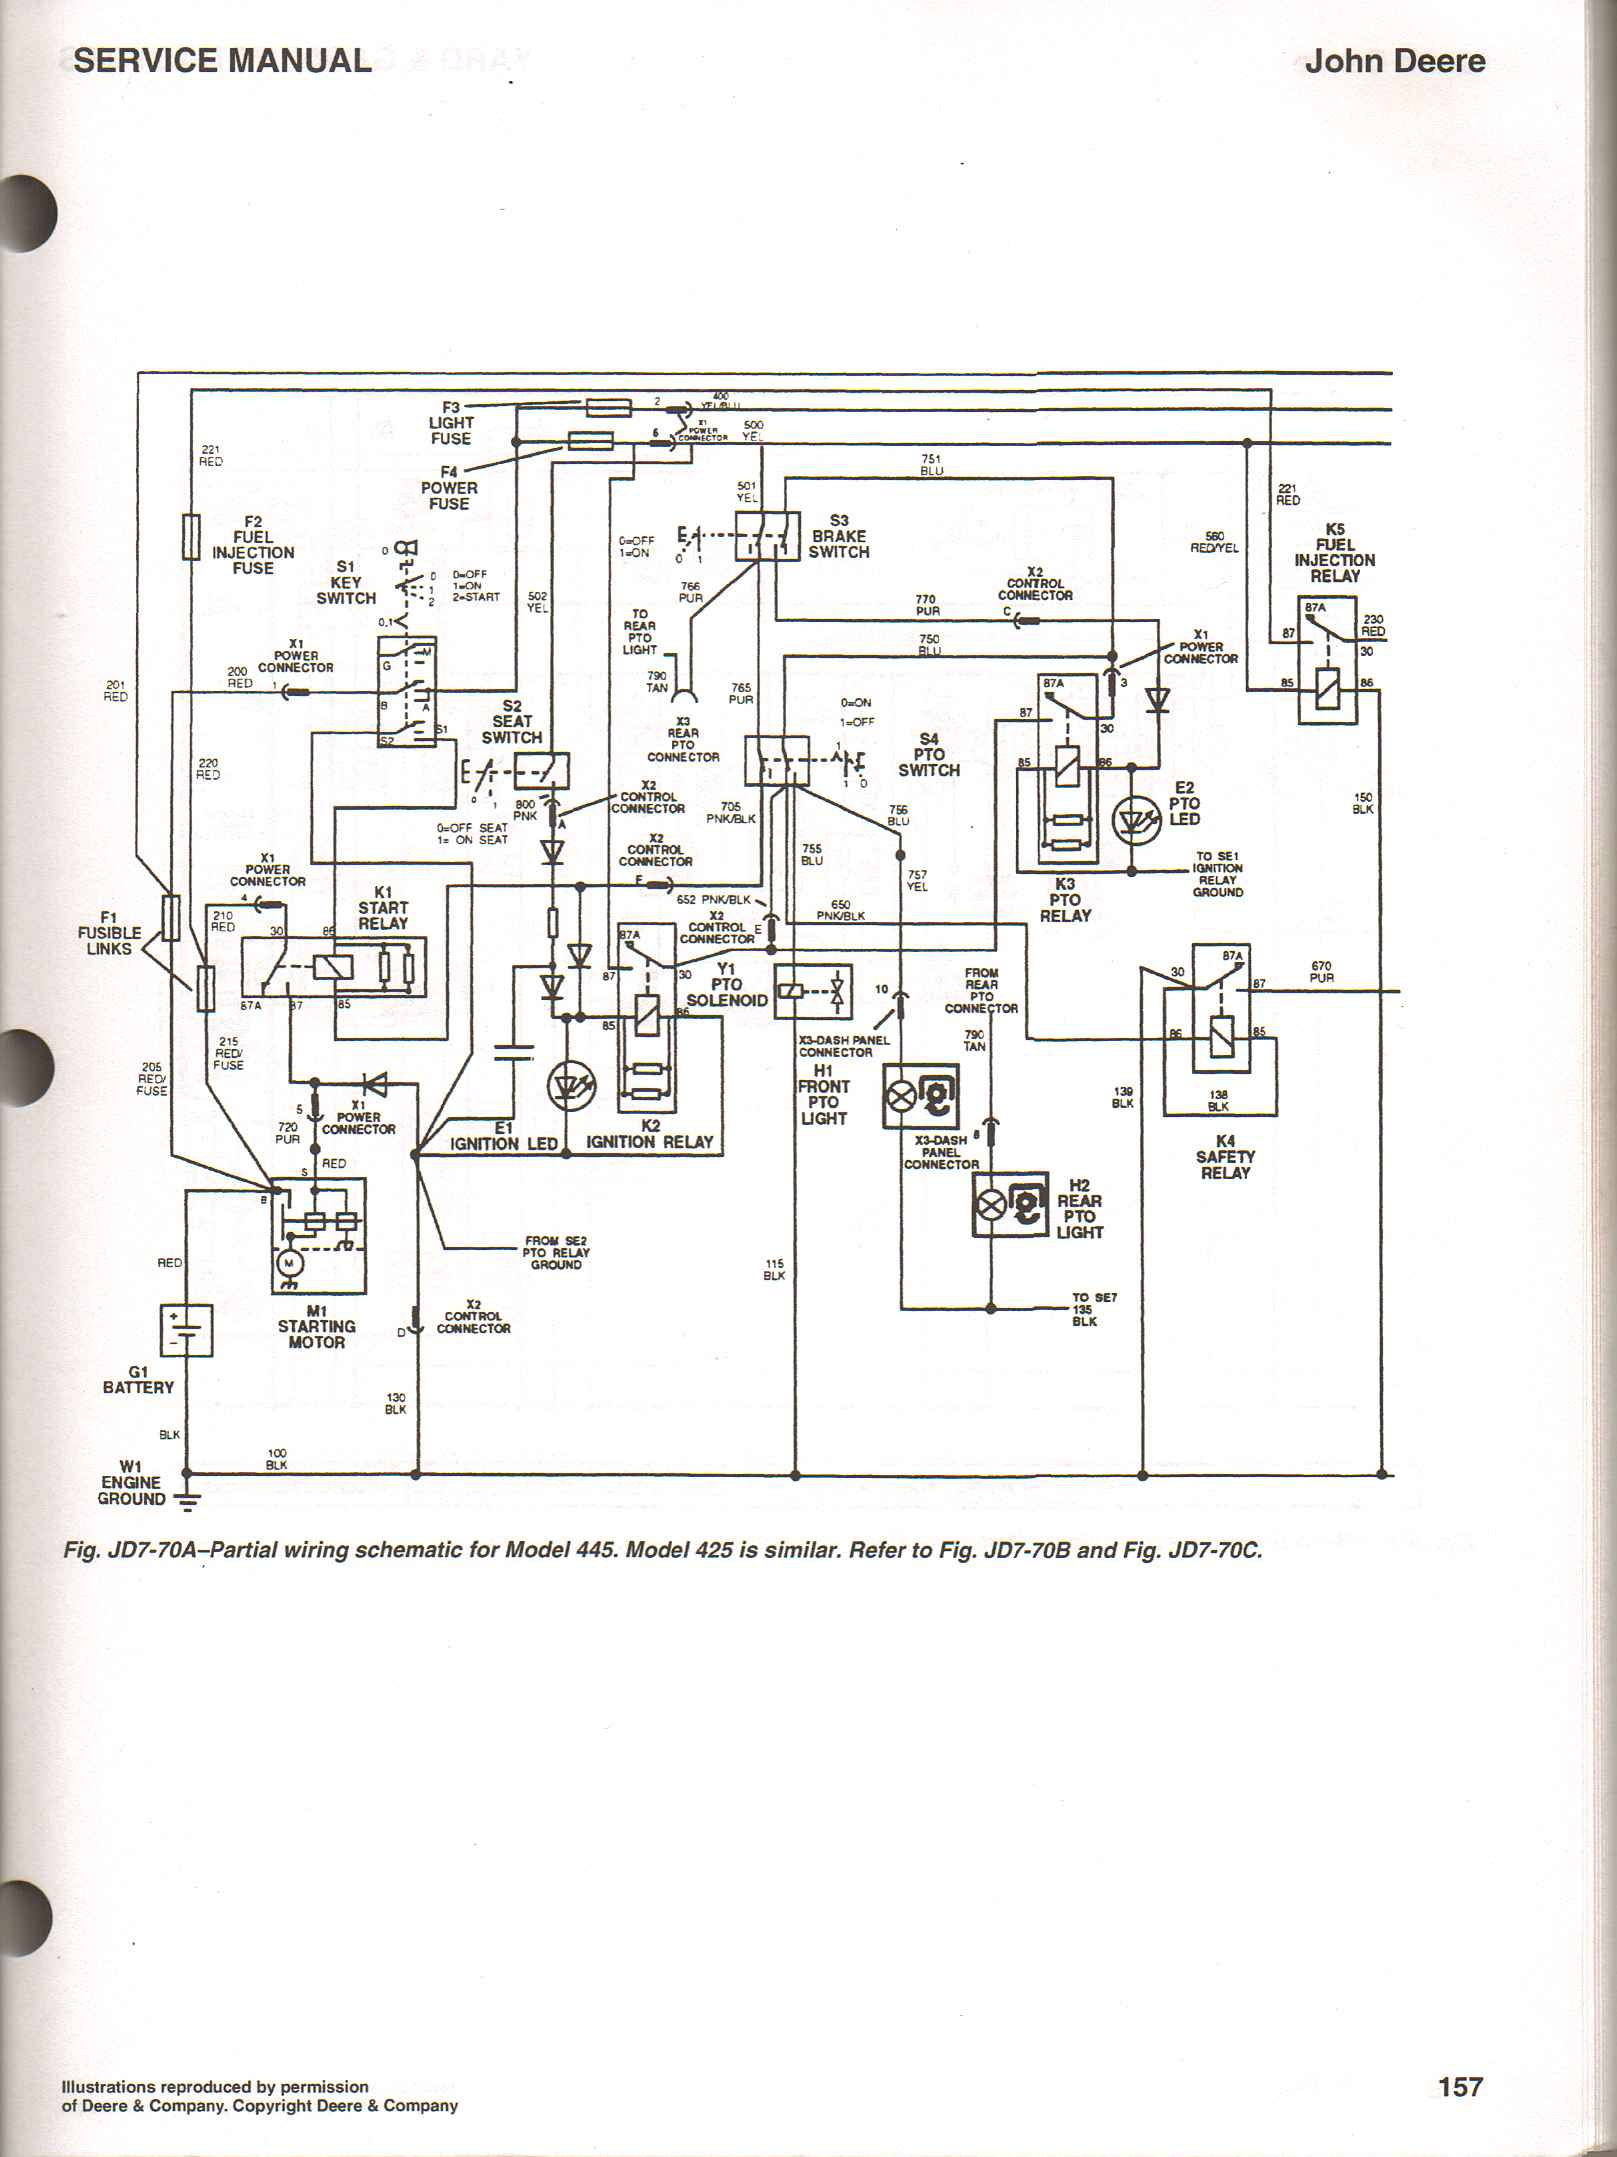 John Deere 345 Wiring Diagram on john deere wiring schematics